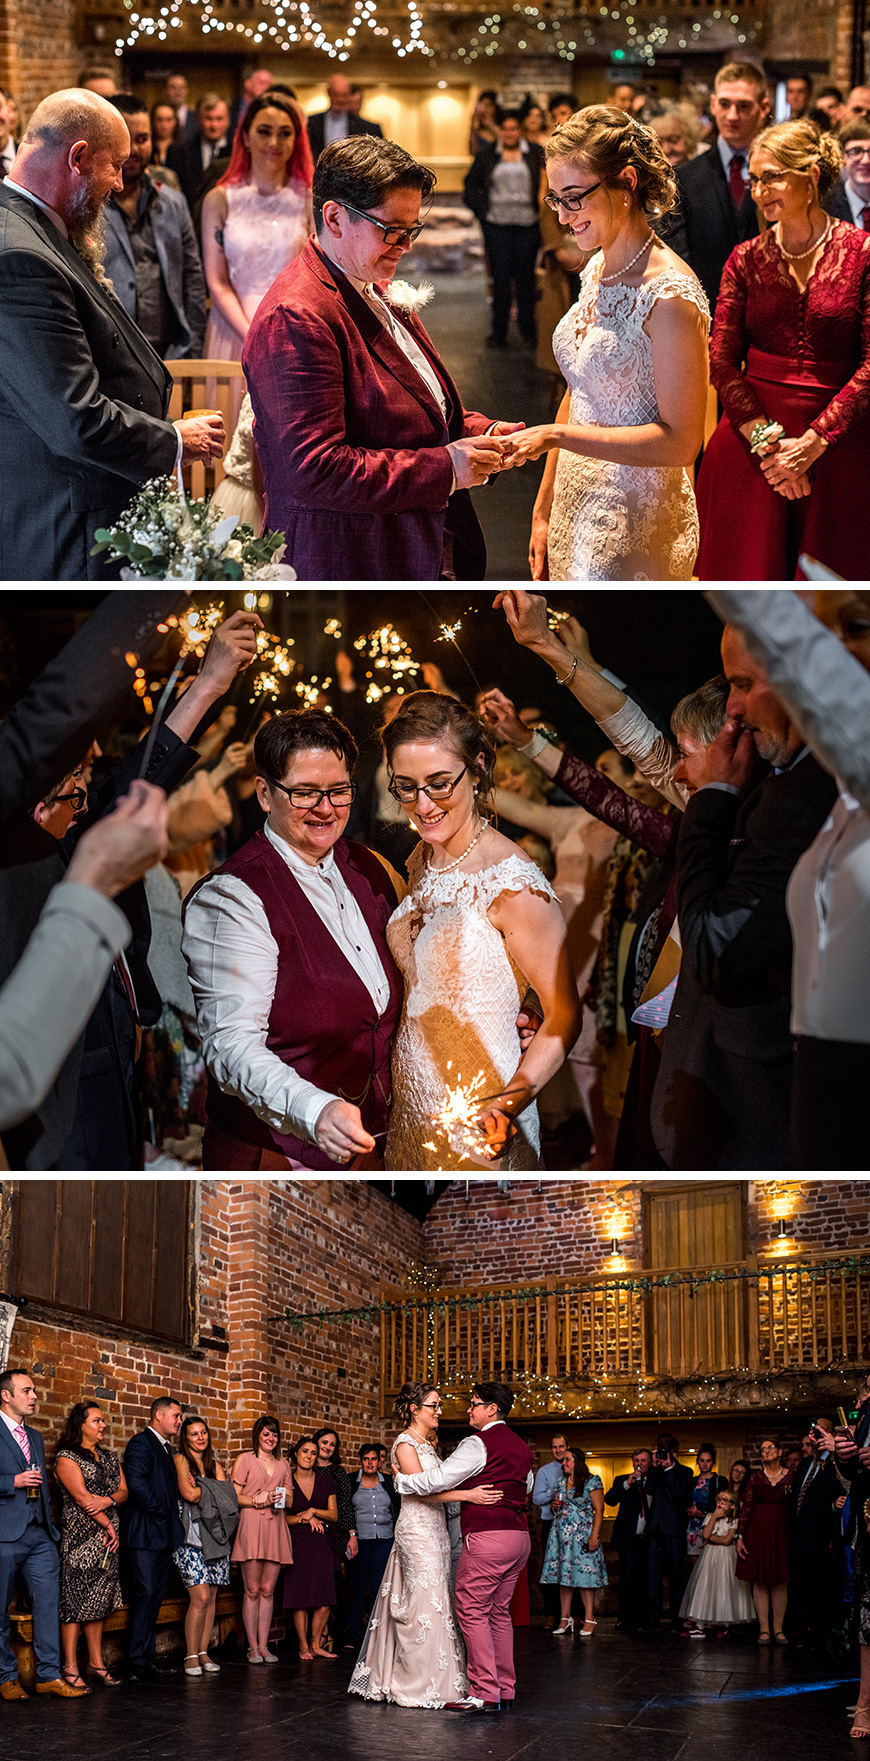 Real Wedding - Alice and J's Handmade Autumn Wedding At Curradine Barns